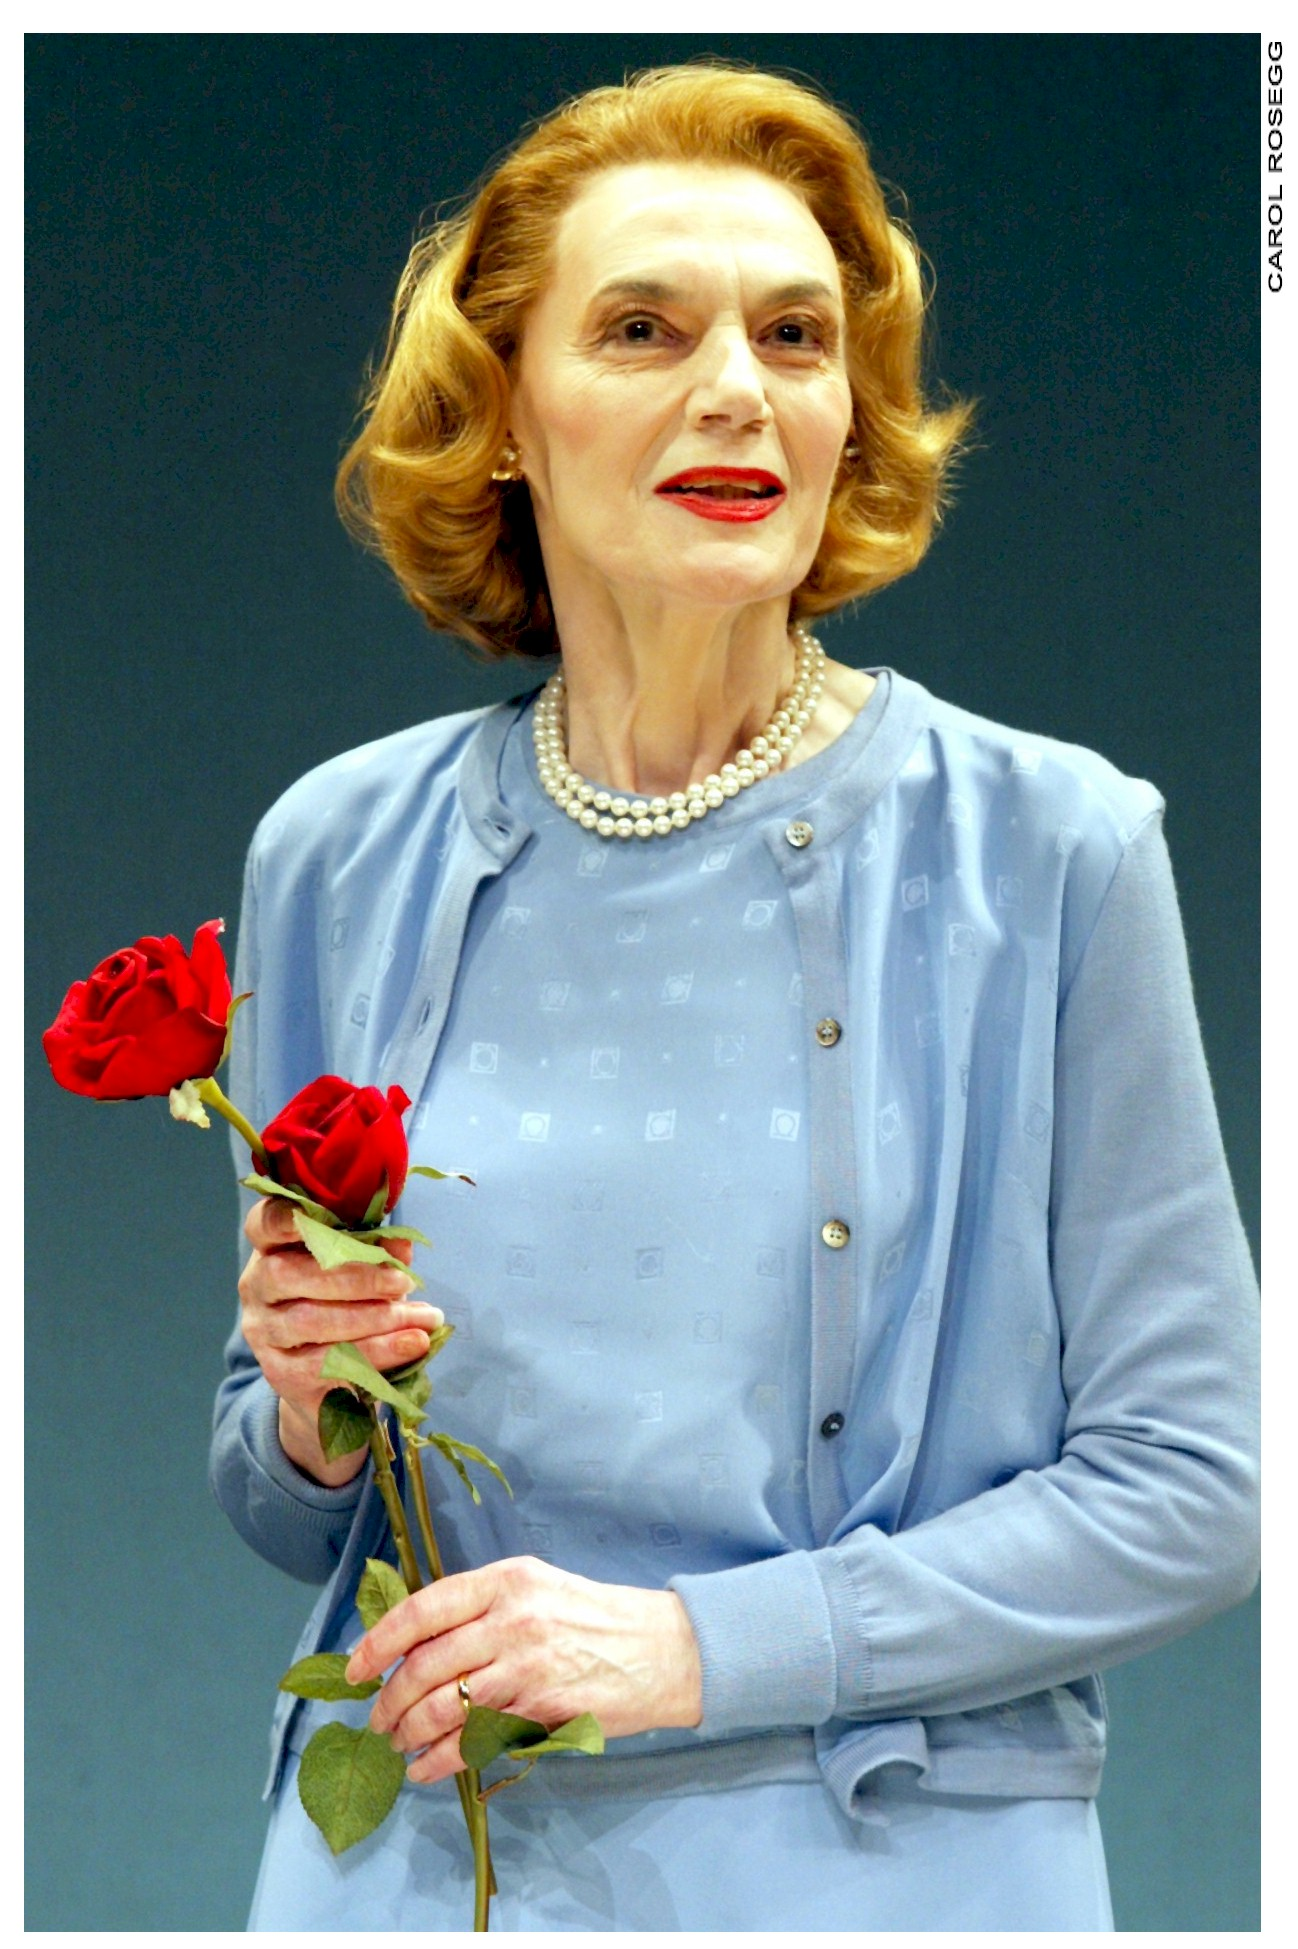 Communication on this topic: Lynda Day George, marian-seldes/